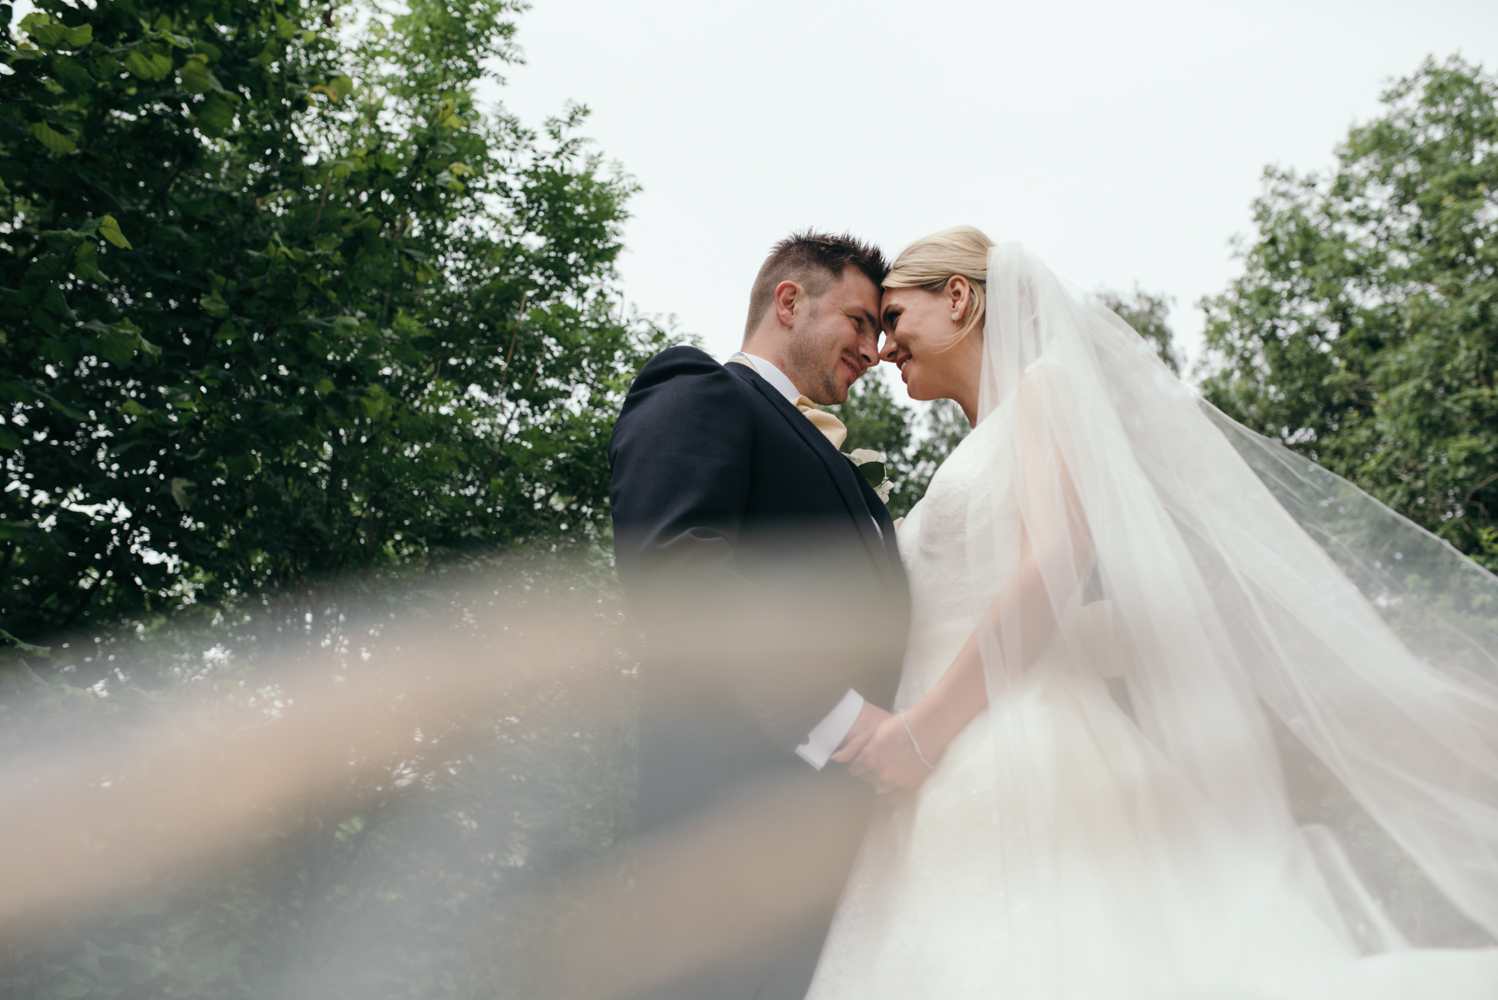 A photo of the bride and groom taken through the brides veil